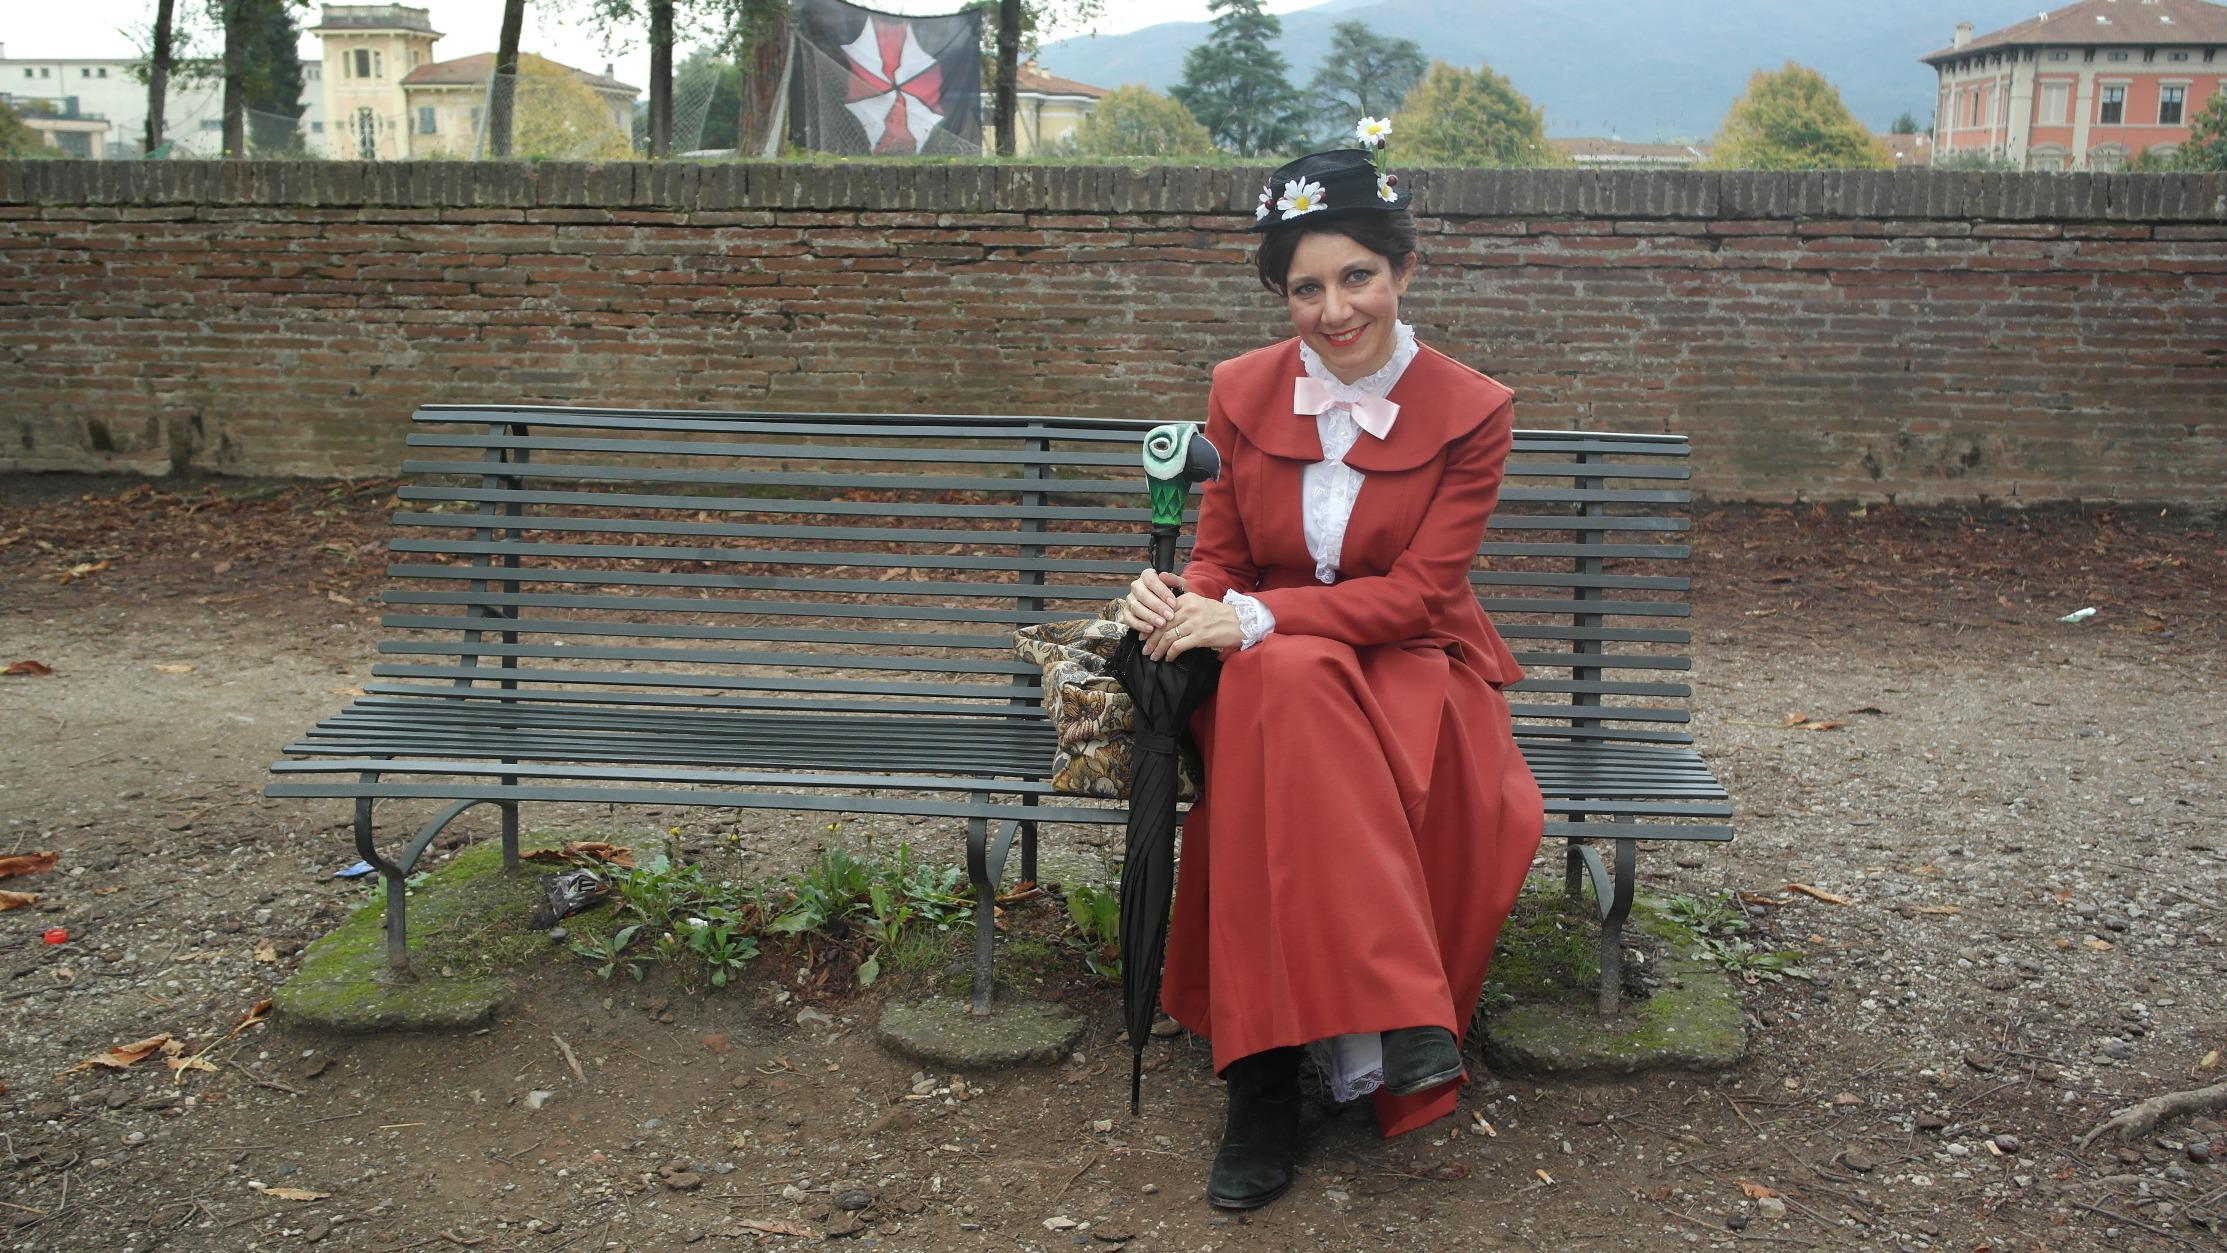 Cosplay Mary Poppins